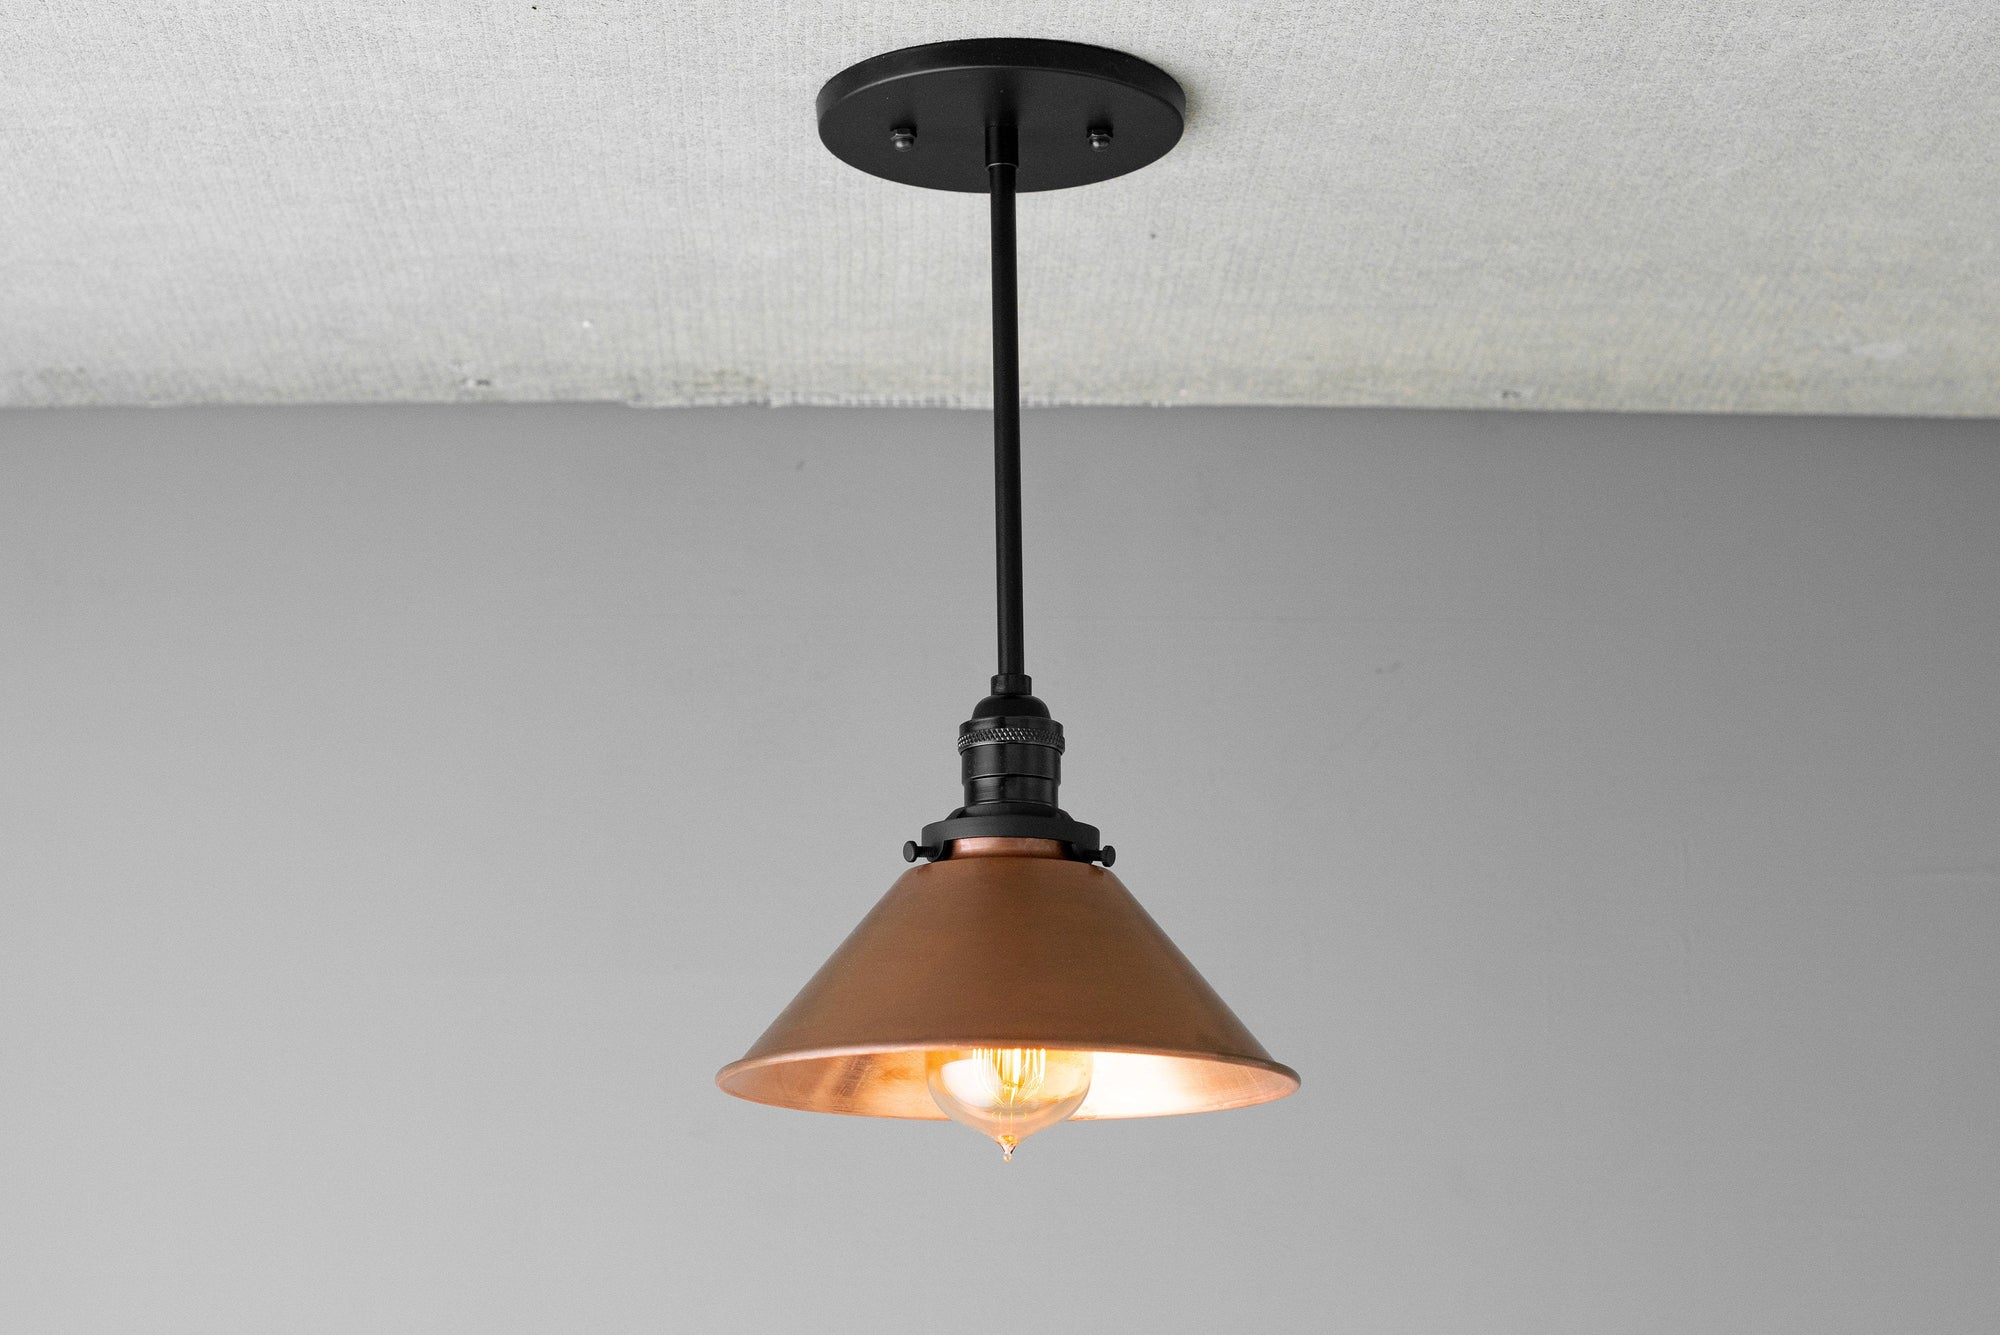 Bon Copper Lighting   Pendant Lighting   Ceiling Light   Hanging Lamp   Co    Peared Creation